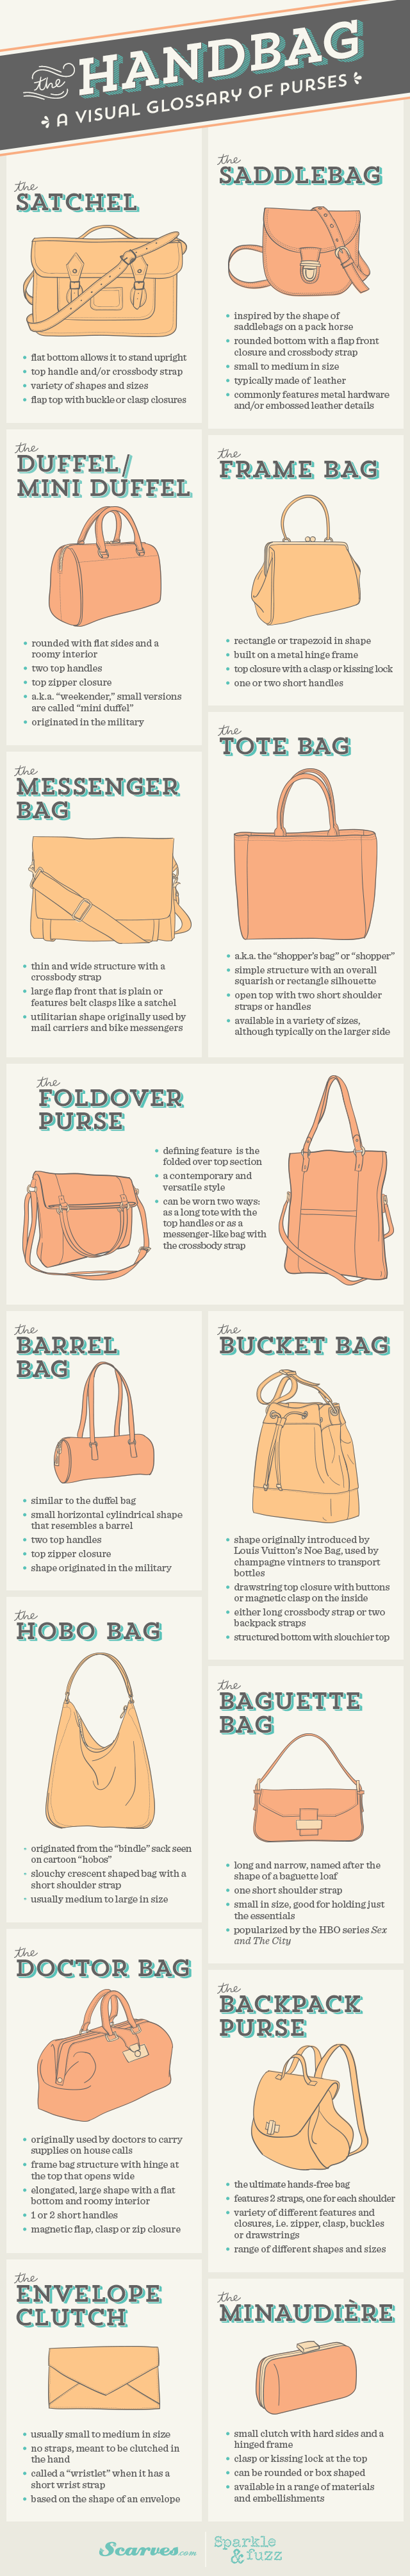 The Handbag A Visual Glossary Of Purses Infographic